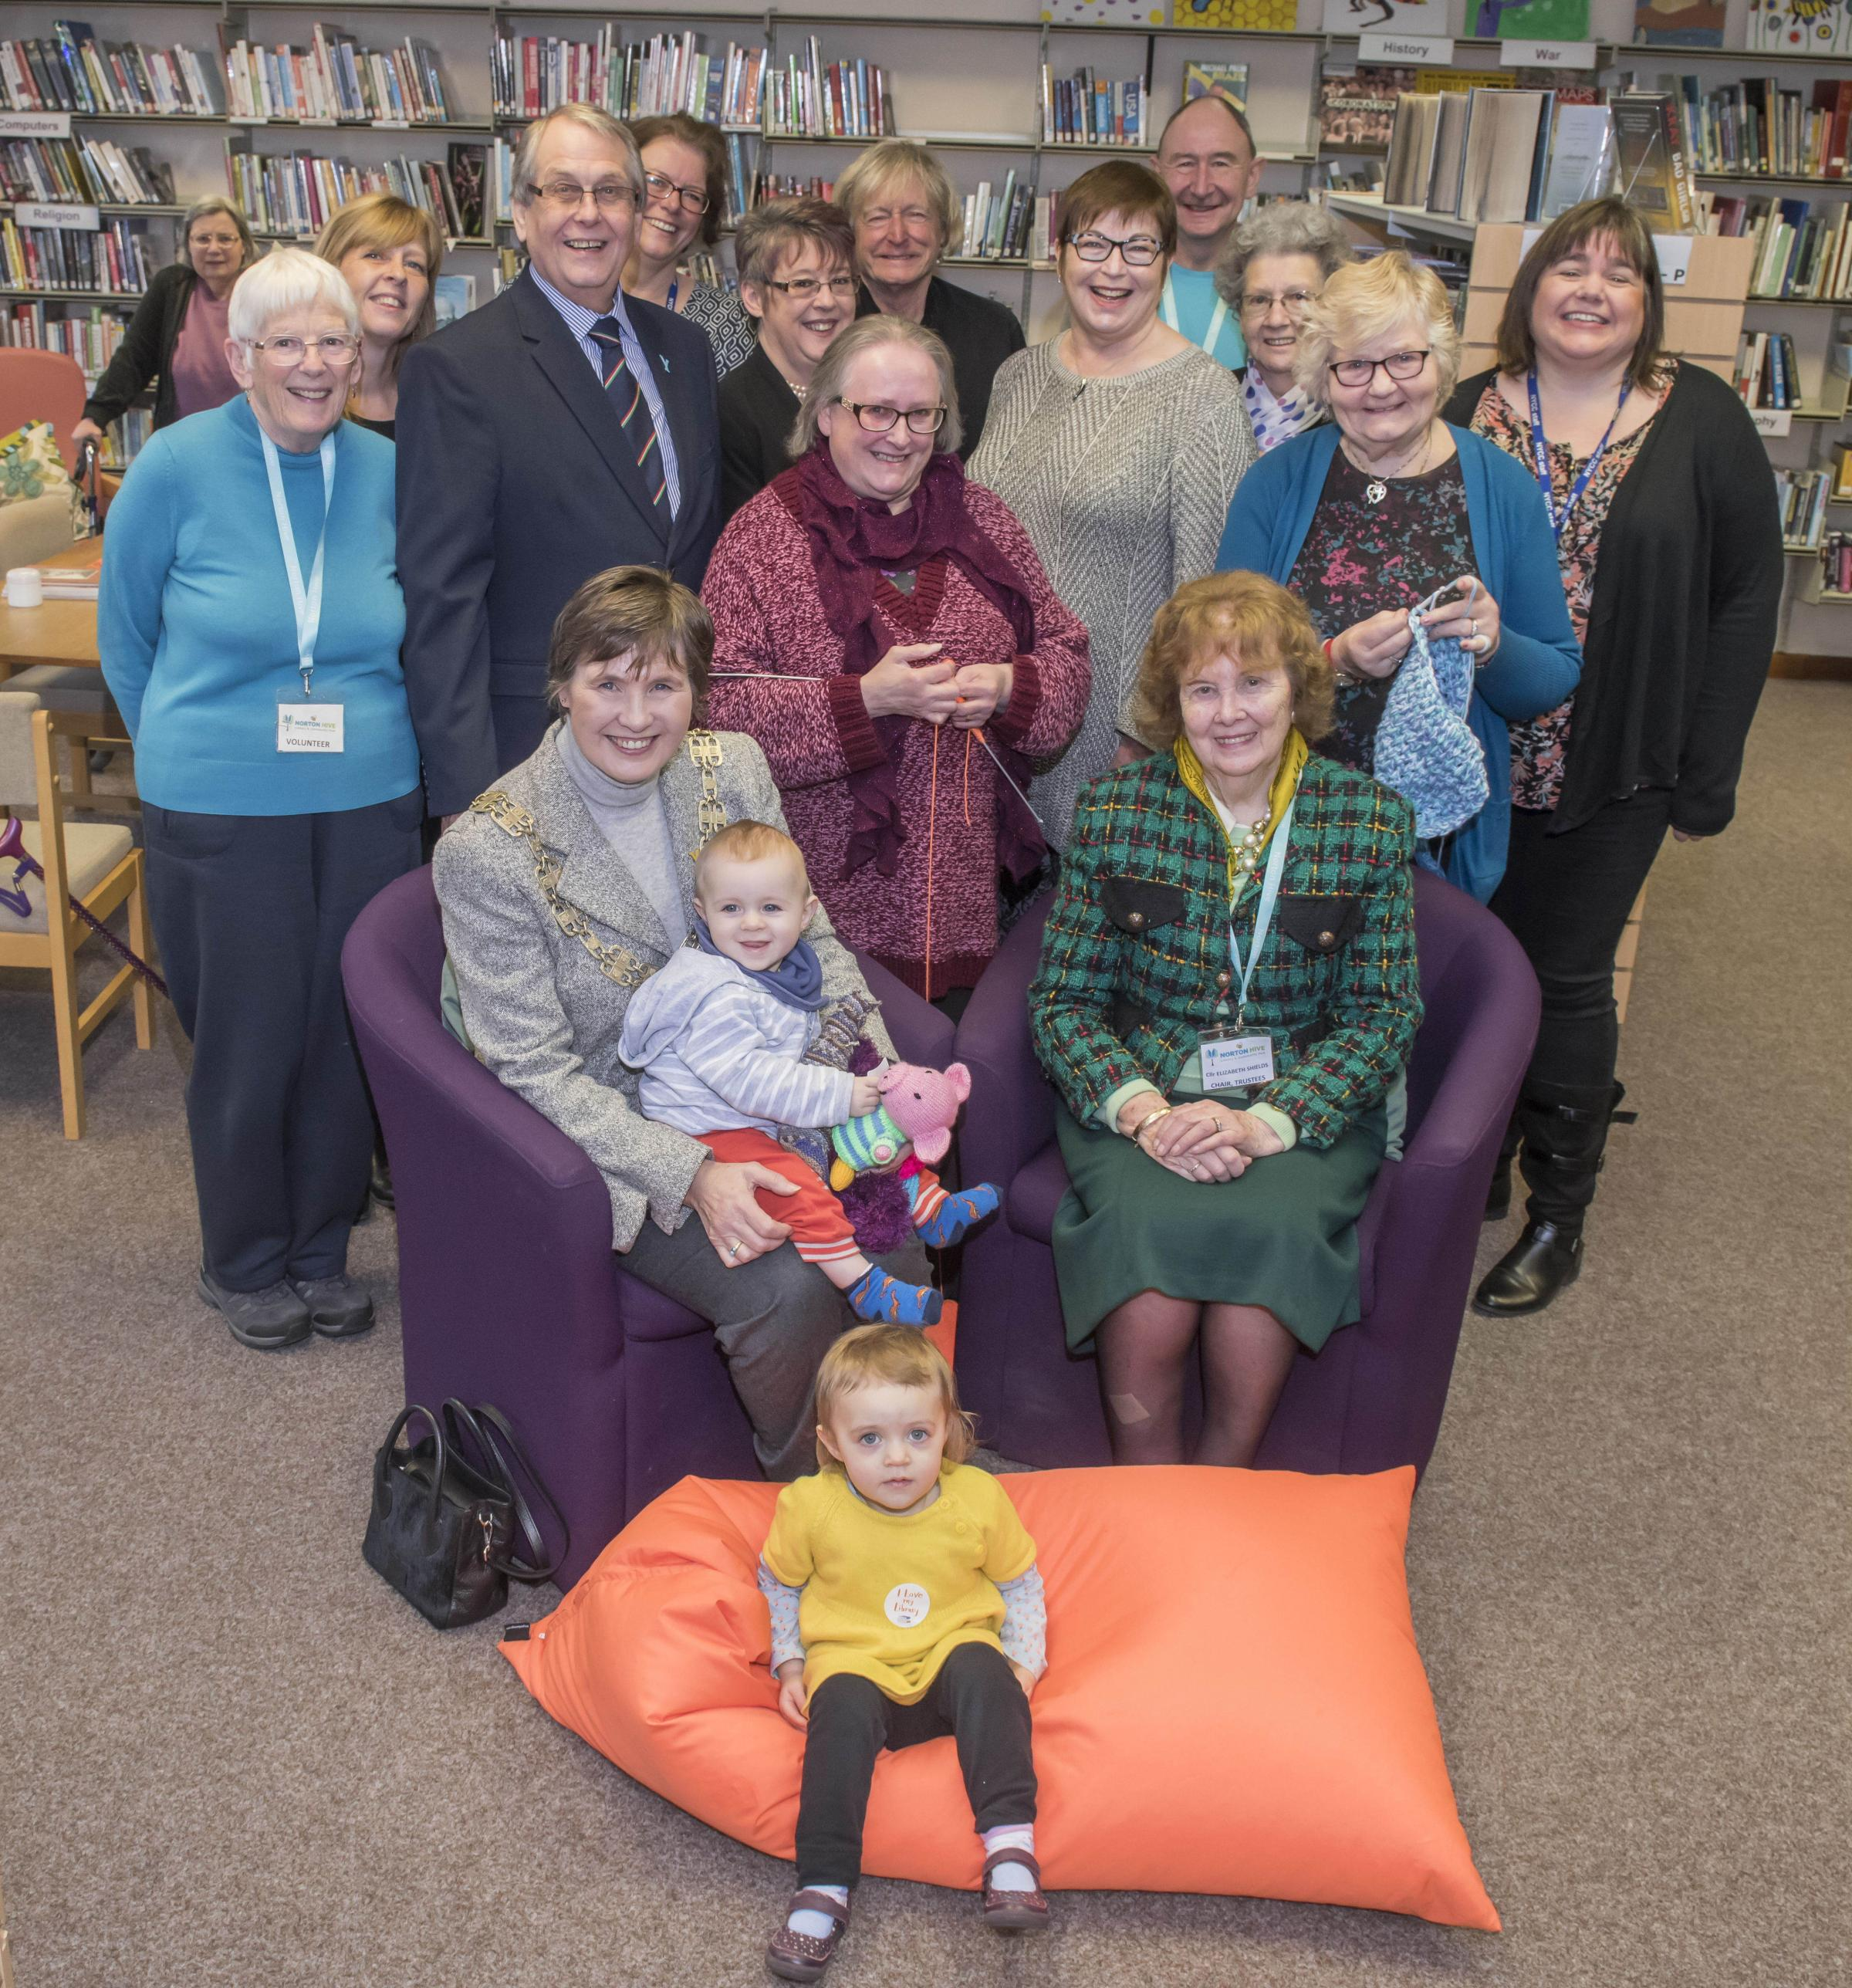 Cllr Helen Swier, seated, left, and Cllr Elizabeth Shields, seated, right, celebrate the success of Norton Hive Library and Community Hub with volunteers, councillors and members of the Stronger Communities team